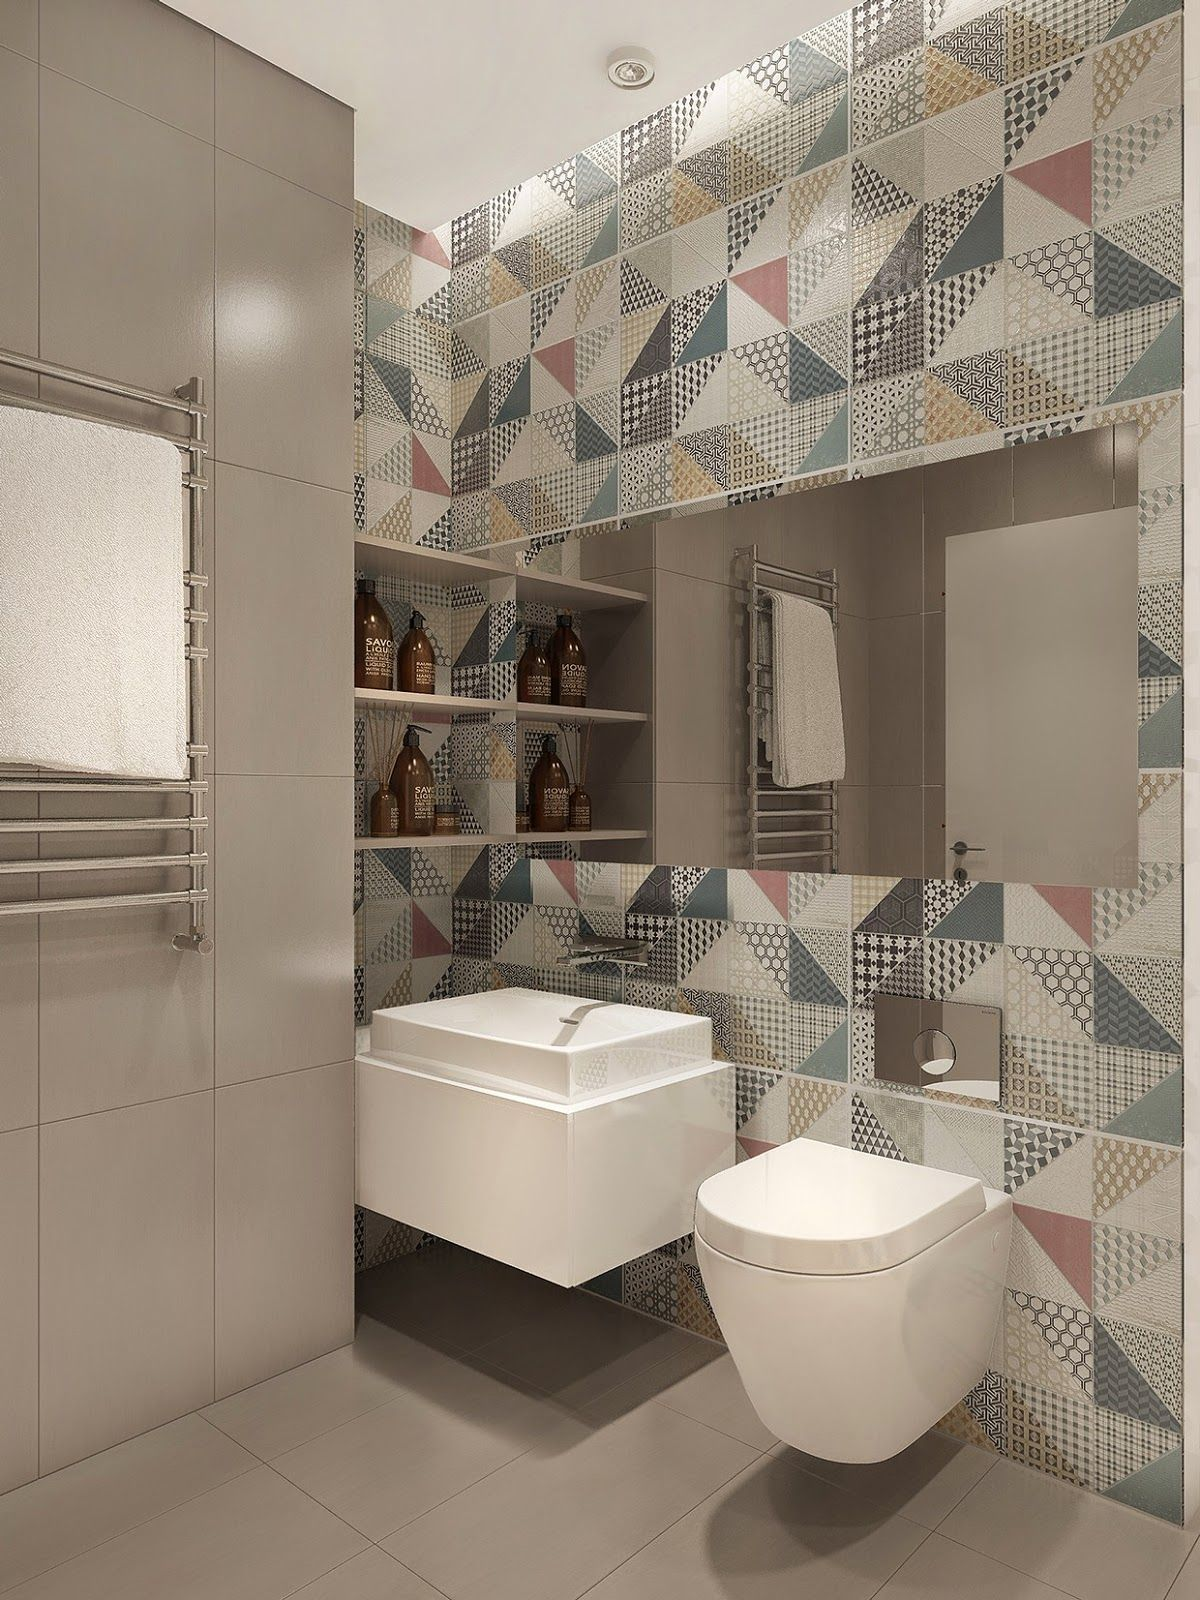 http://www.homedesignlove.com/2014/09/gorgeous-apartment-design-by-pavel.html